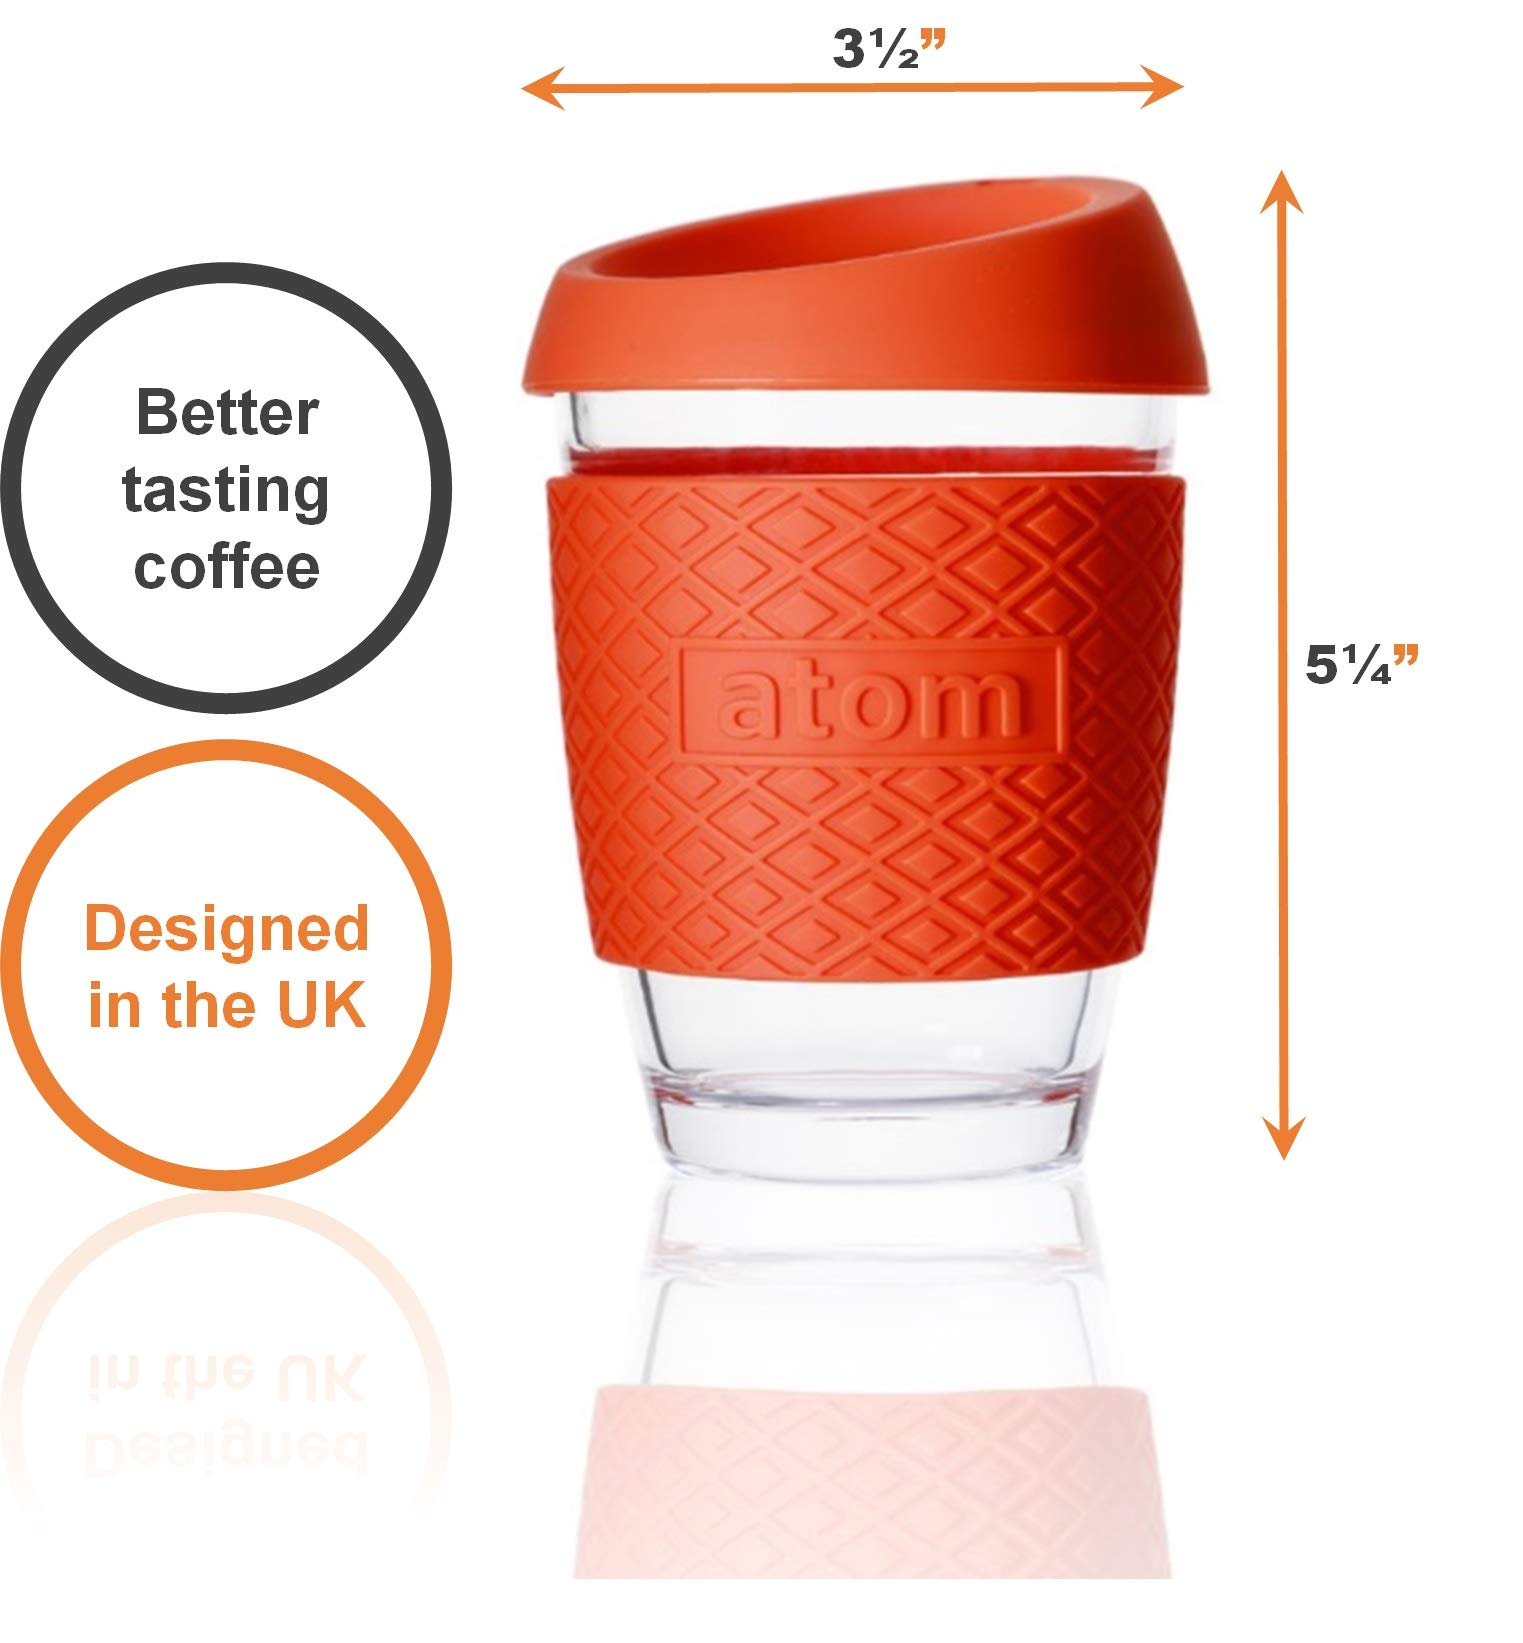 Reusable-Coffee-CupTravel-Mug-with-lid-Thickened-Thermal-Sleeve-High-Quality-Borosilicate-Glass-Eco-Friendly-12oz-Barrister-Friendly-Perfect-for-Home-The-Office-or-to-Go